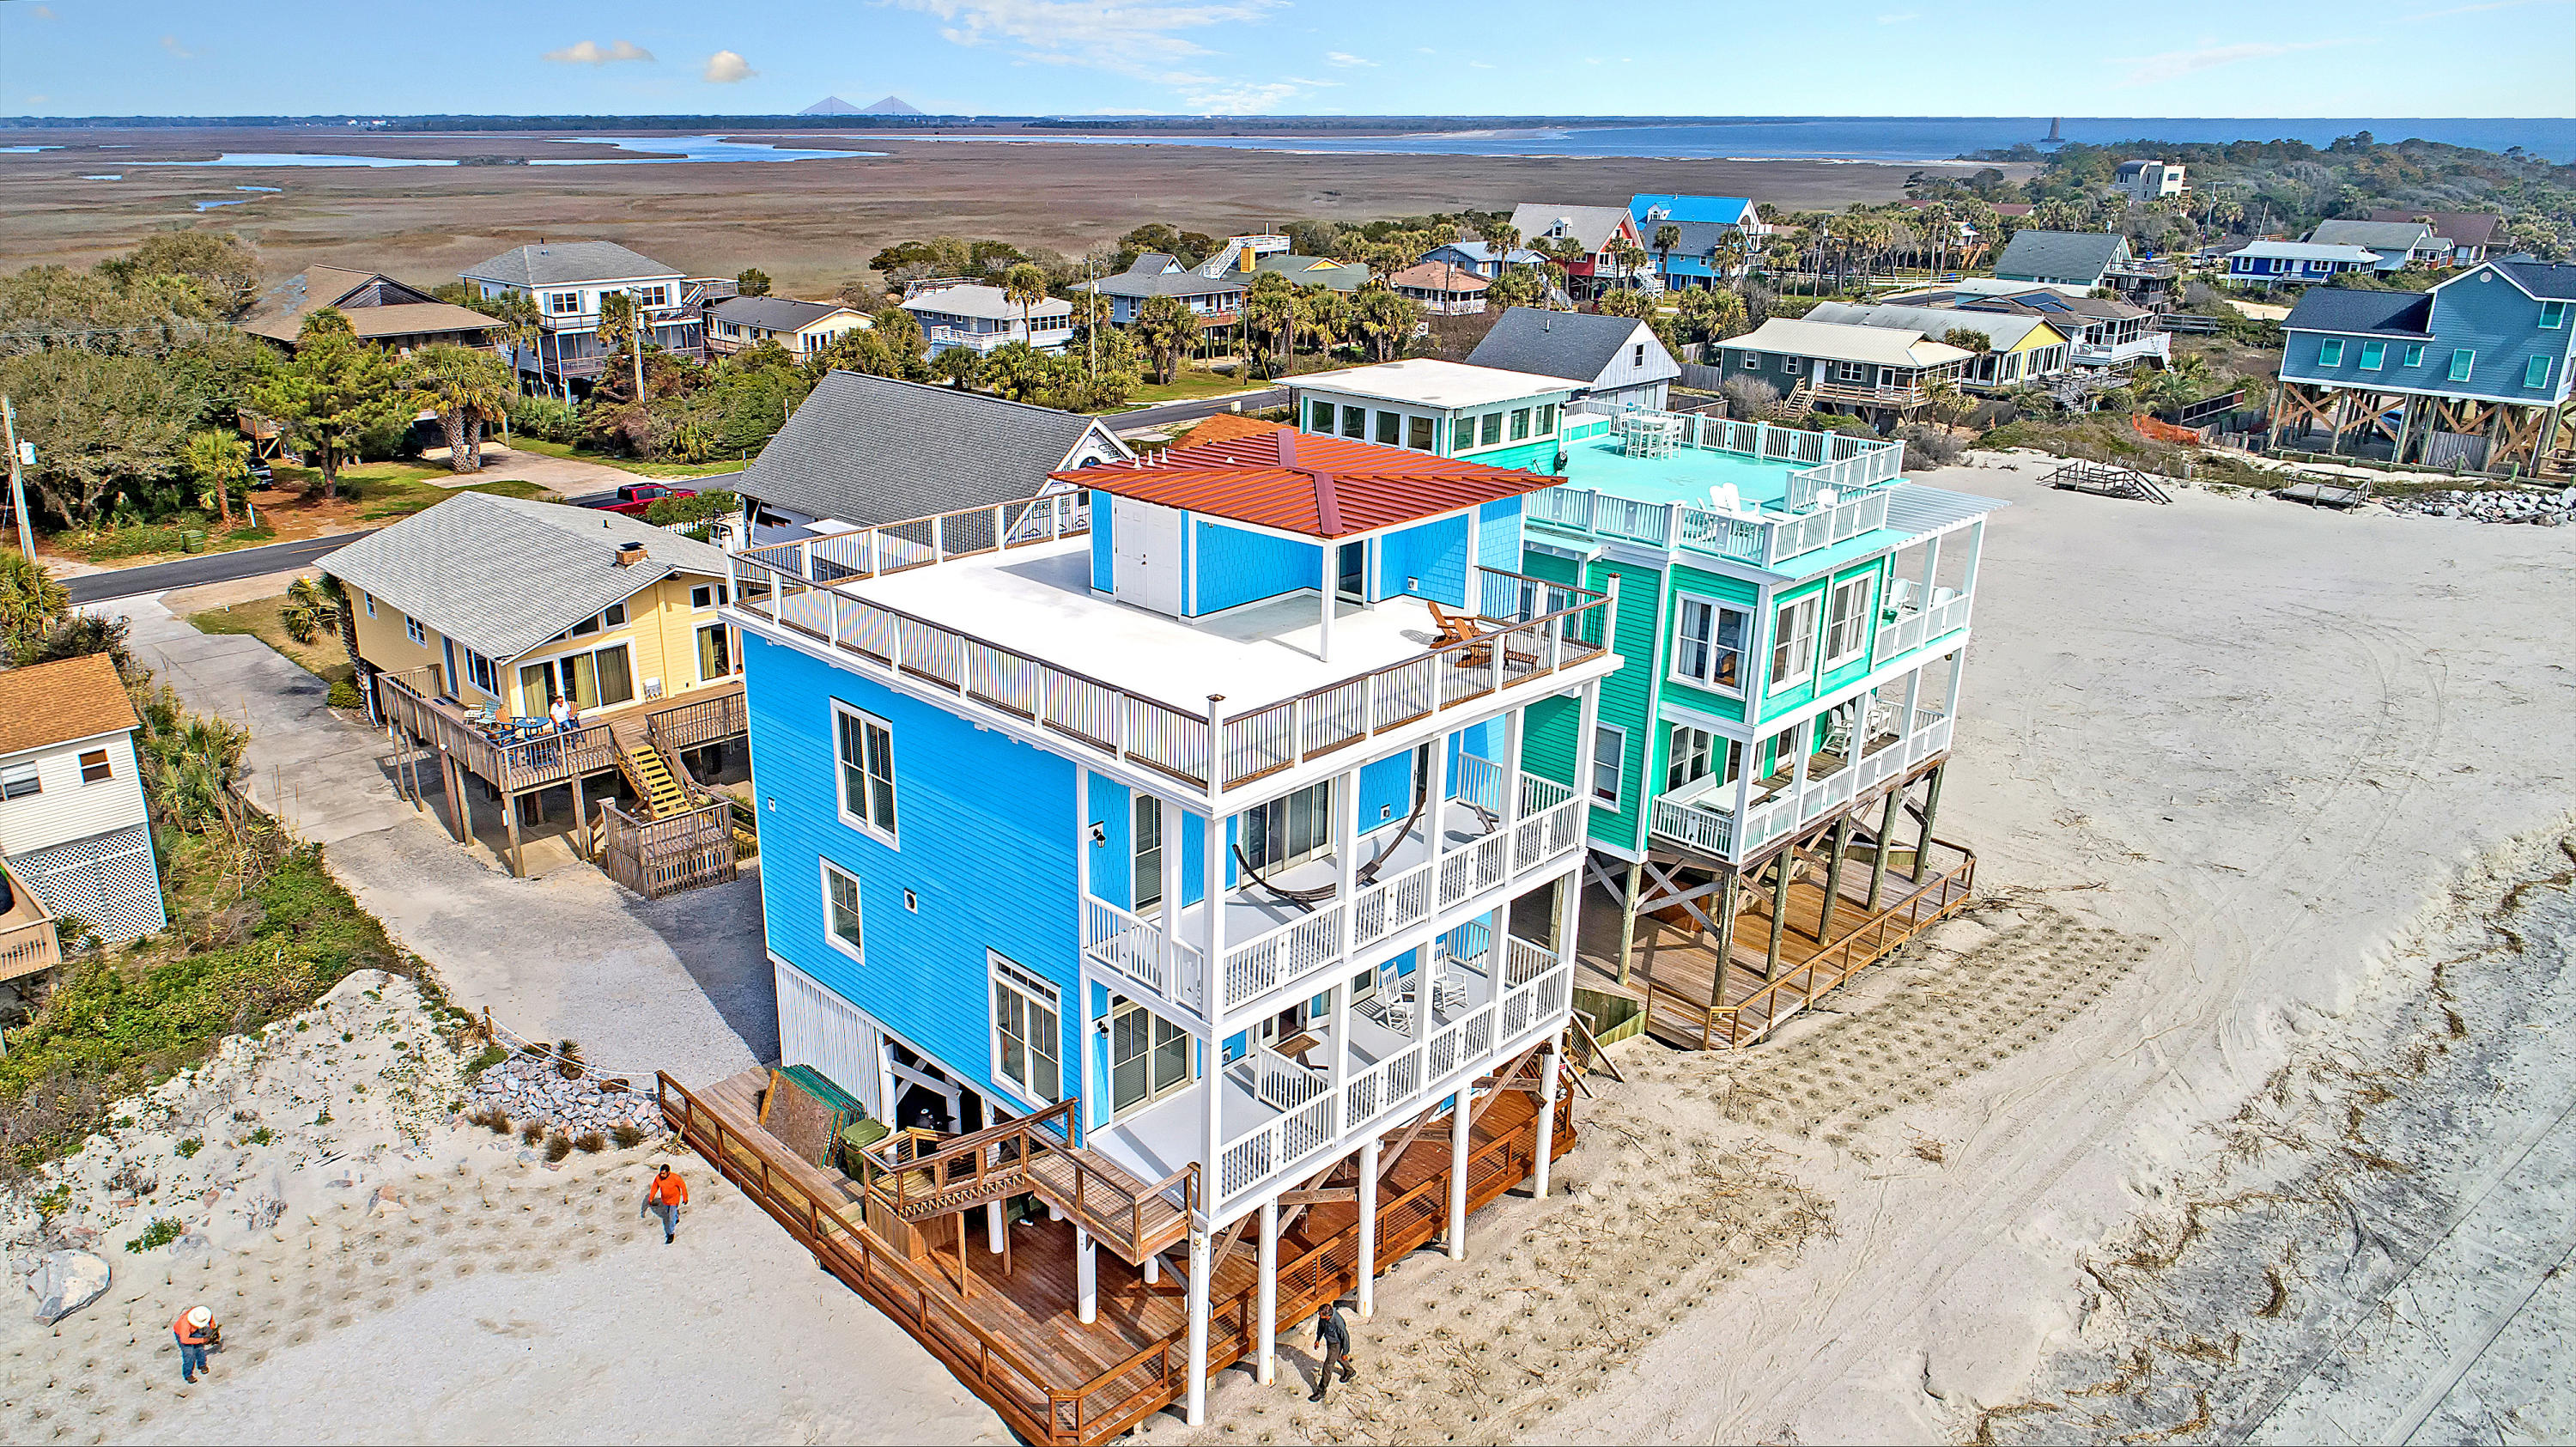 1707 E B E Ashley Avenue UNIT Share 4 Folly Beach, SC 29439